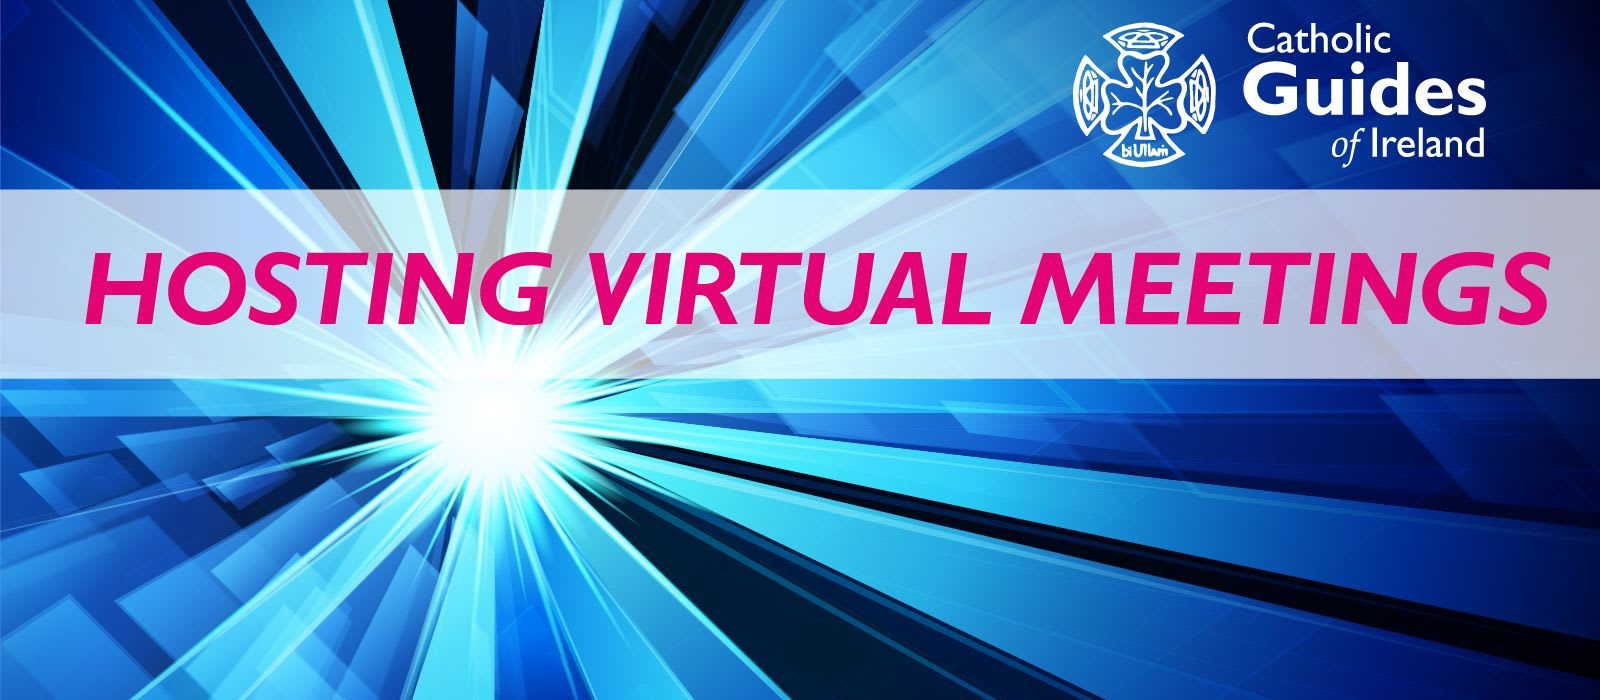 Hosting Virtual Meetings